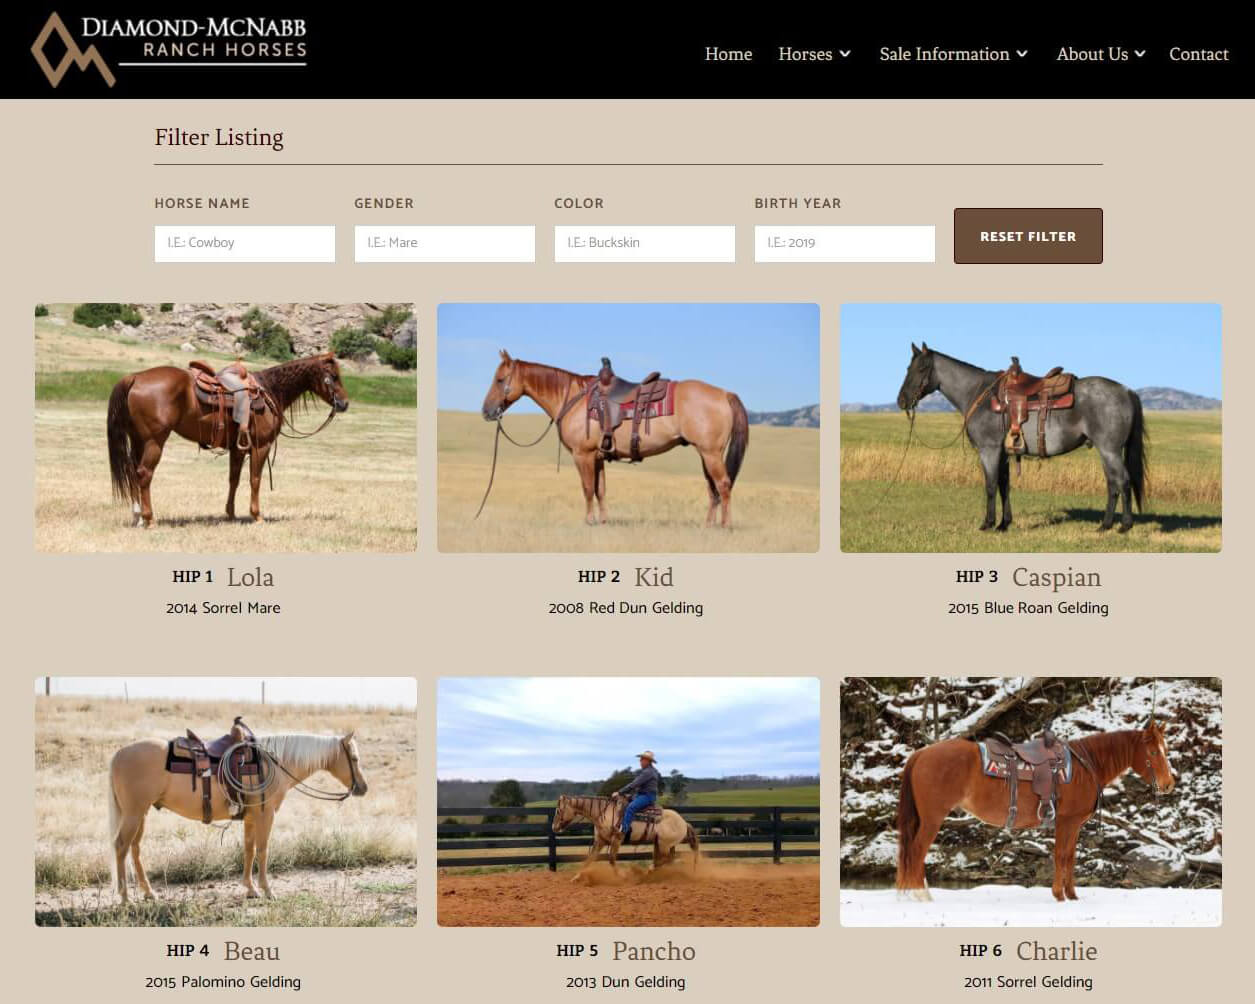 Diamond-McNabb Ranch Horses